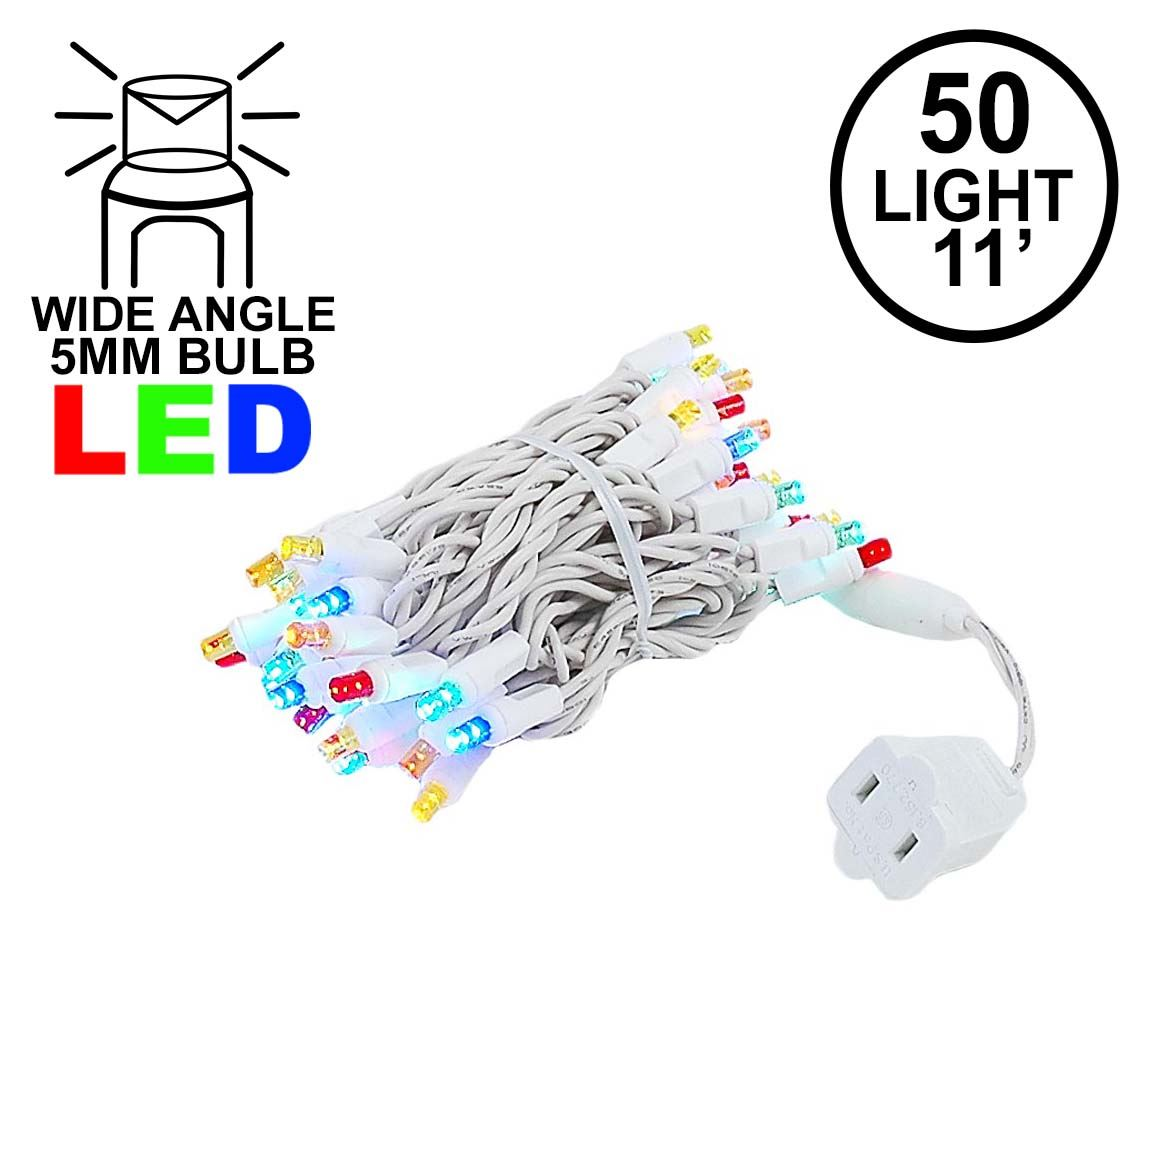 Picture of 50 LED Multi, White Wire LED Christmas Lights 11' Long